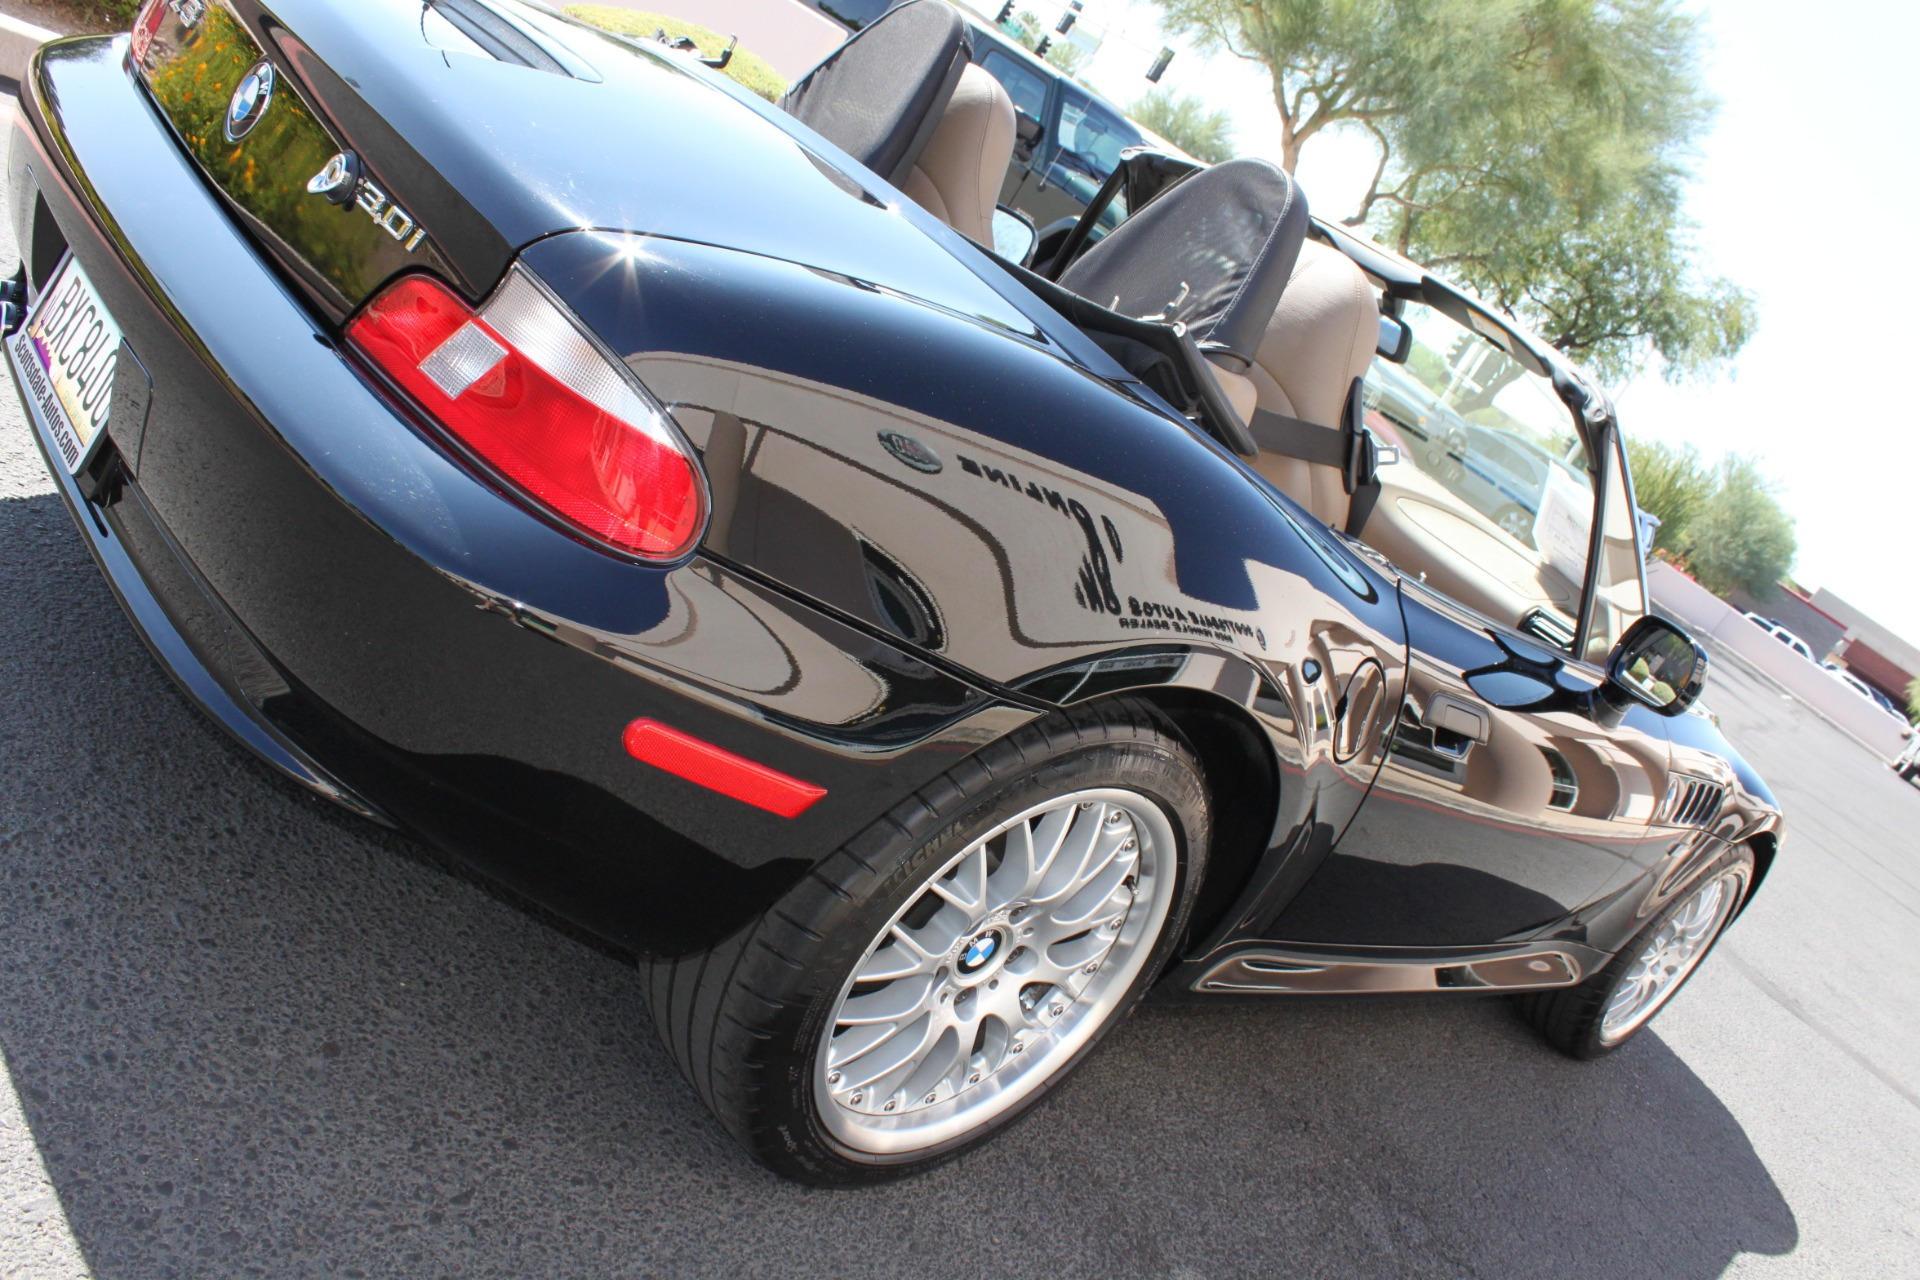 Used-2001-BMW-Z3-Roadster-30i-Used-cars-for-sale-Lake-County